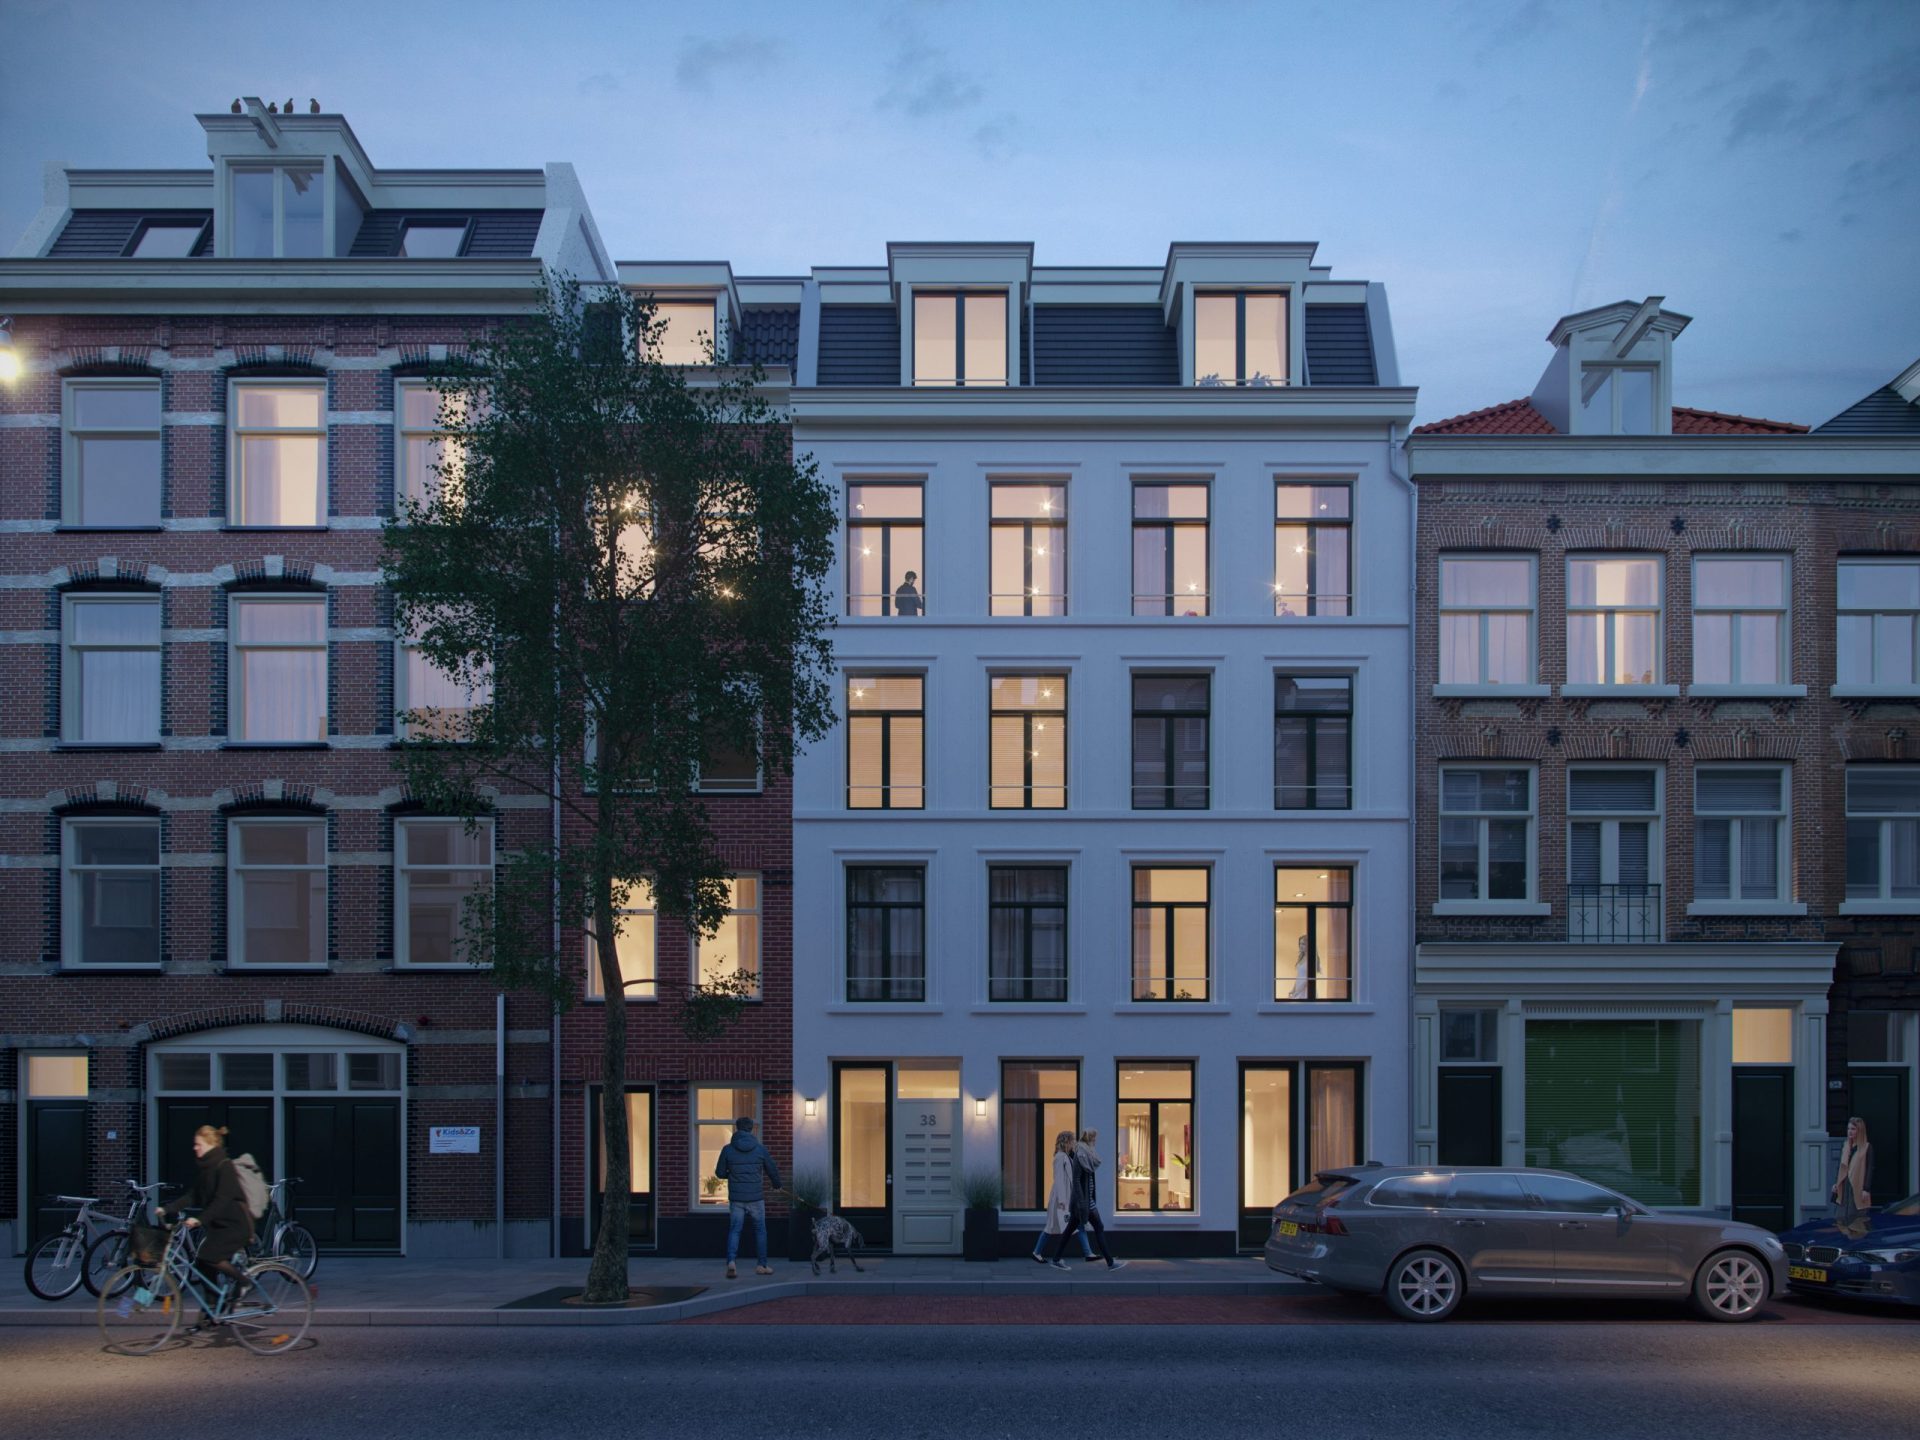 Uptown Residence - 01. Exterieur Voorgevel